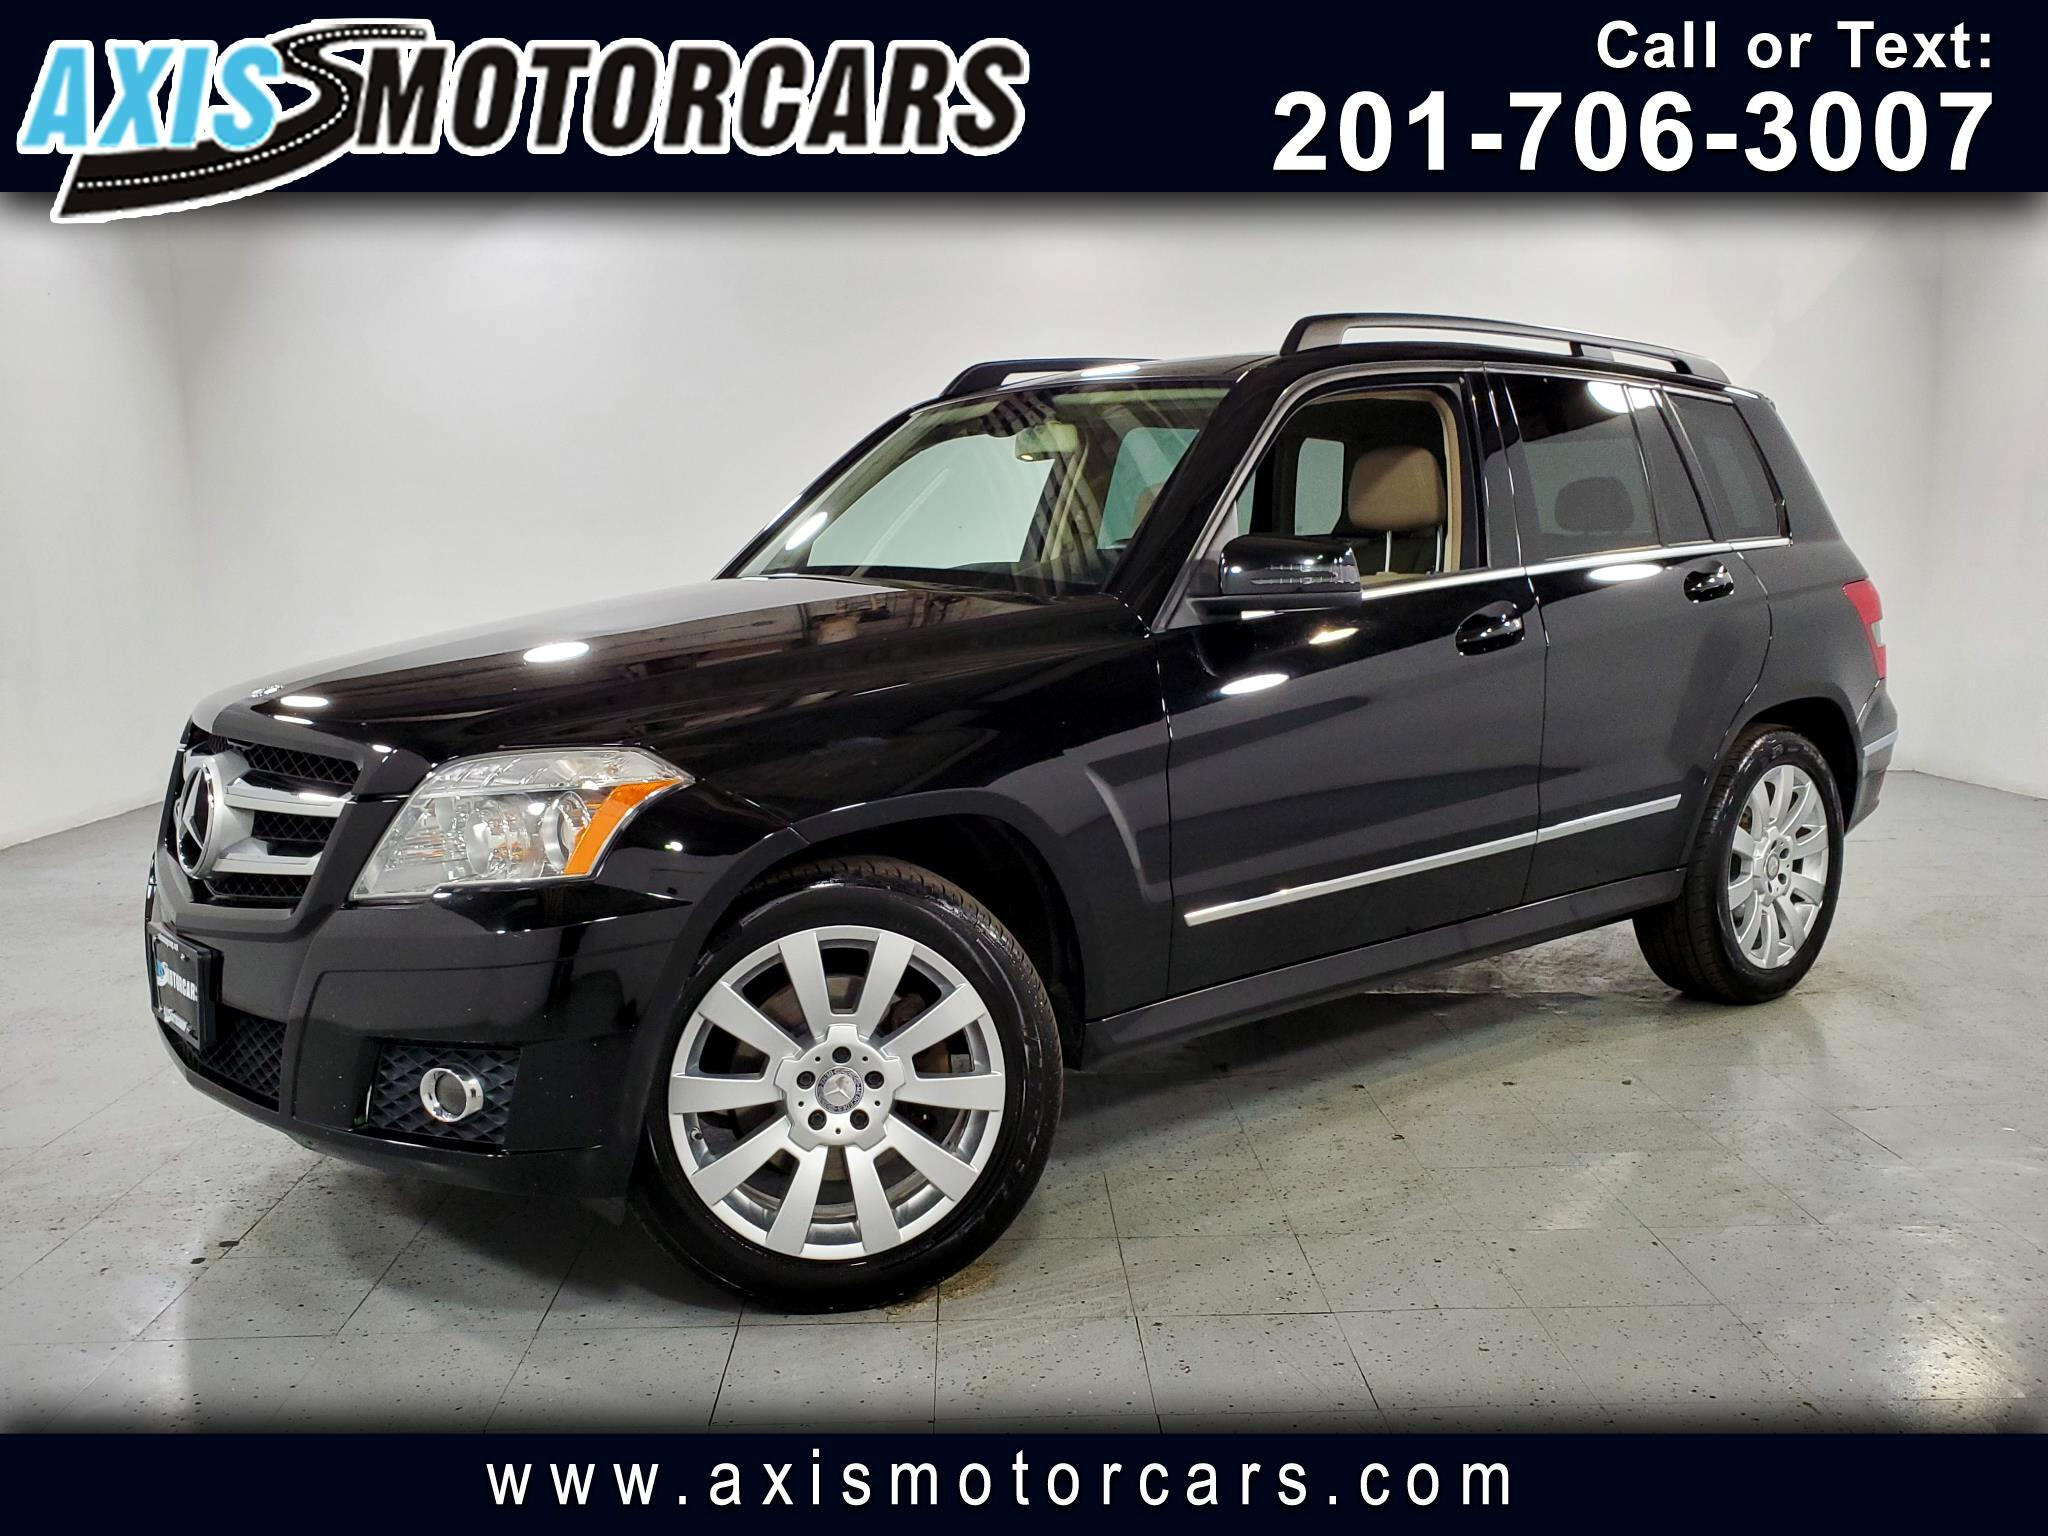 2011 Mercedes-Benz GLK-Class 350 4MATIC w/Panoramic Roof Navigation Backup Came